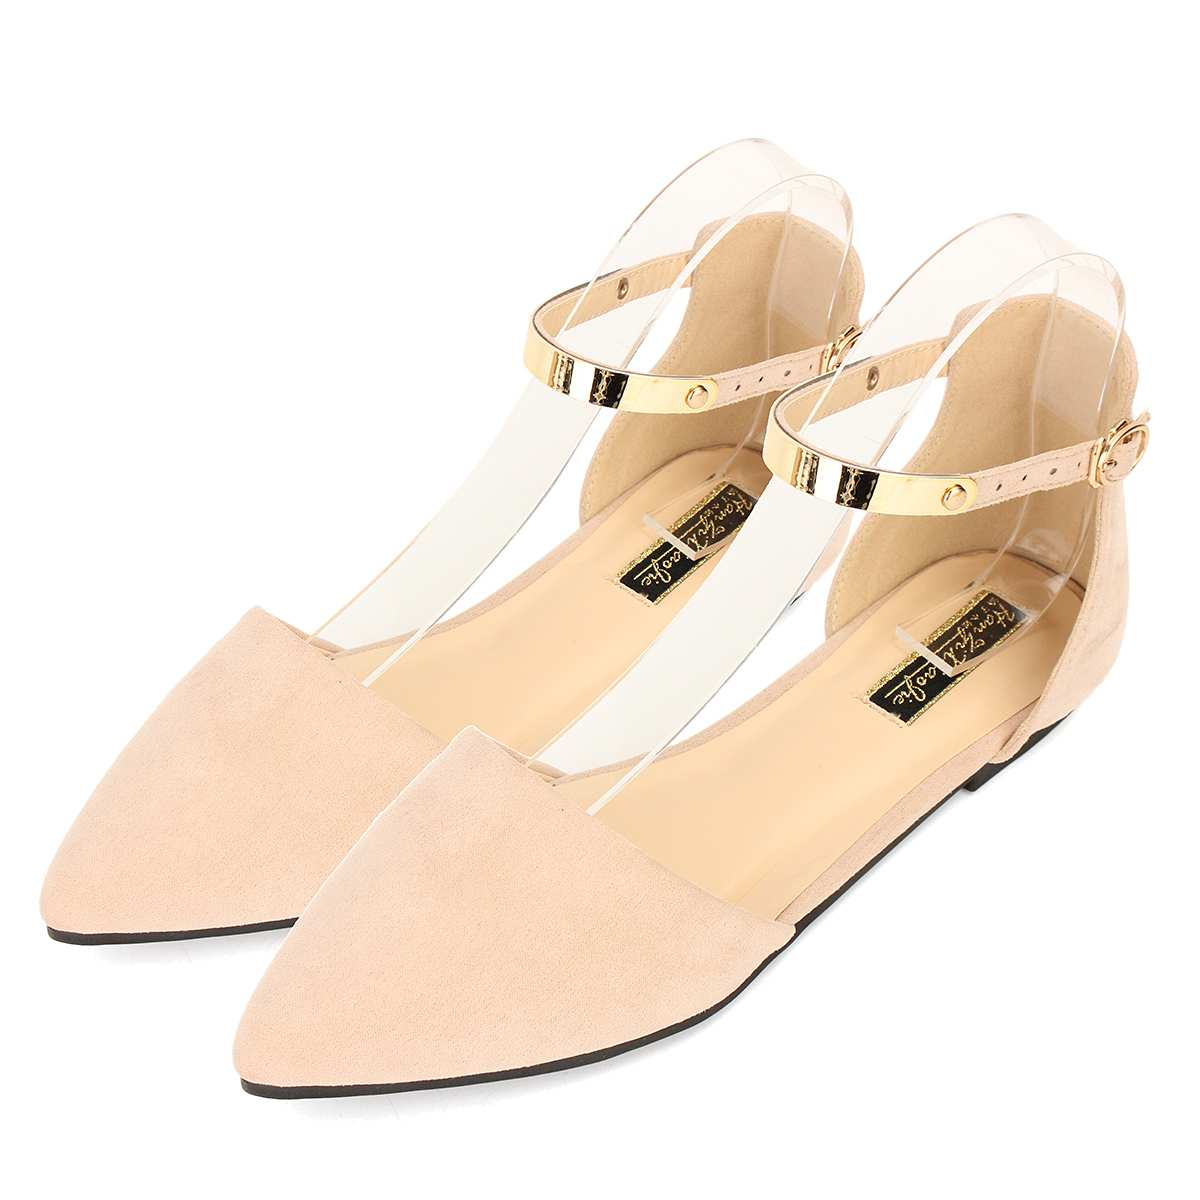 c4281740af31 NIS Faux Suede Women Flat Shoes Women Spring Summer Pointed Toe Ankle  Buckle Strap Flats Ladies Casual Shoes Ballet Flats New